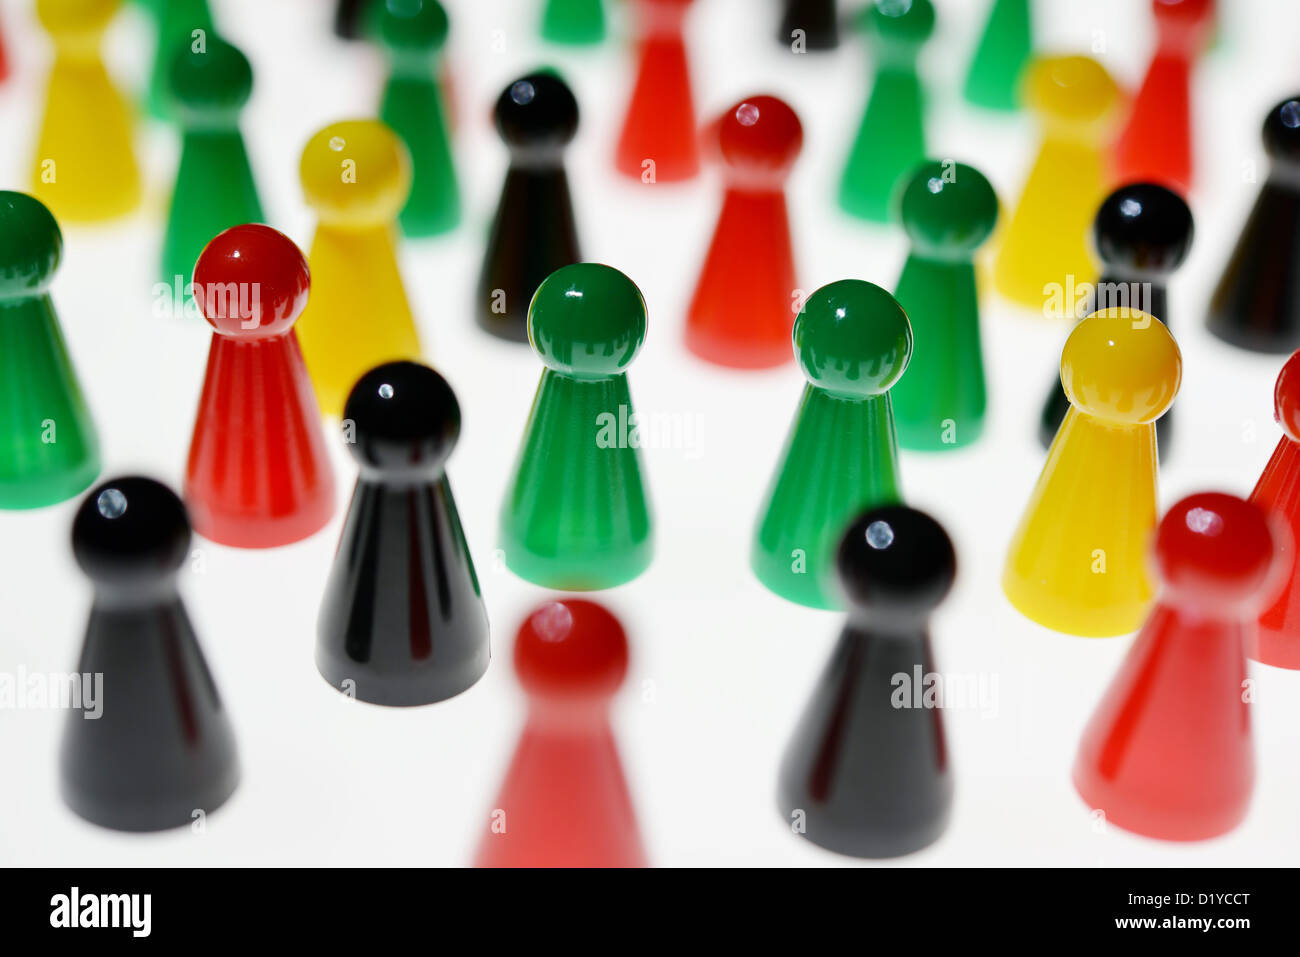 Figures of a game. Photo: Frank May Stock Photo